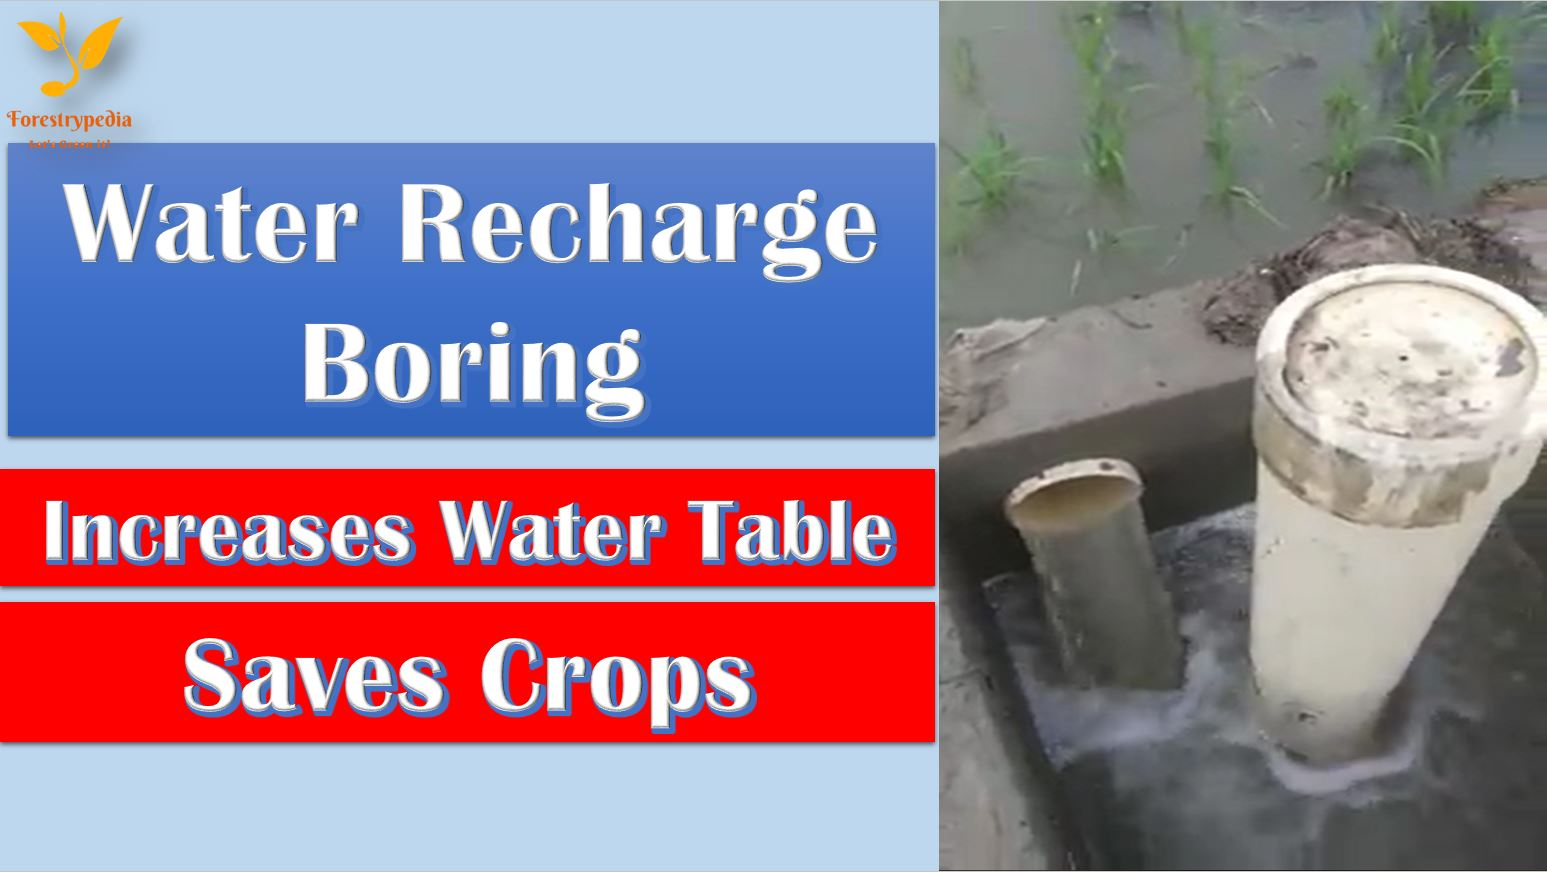 Water Recharge Boring - Saving Crops and Increasing Water Table - forestrypedia.com